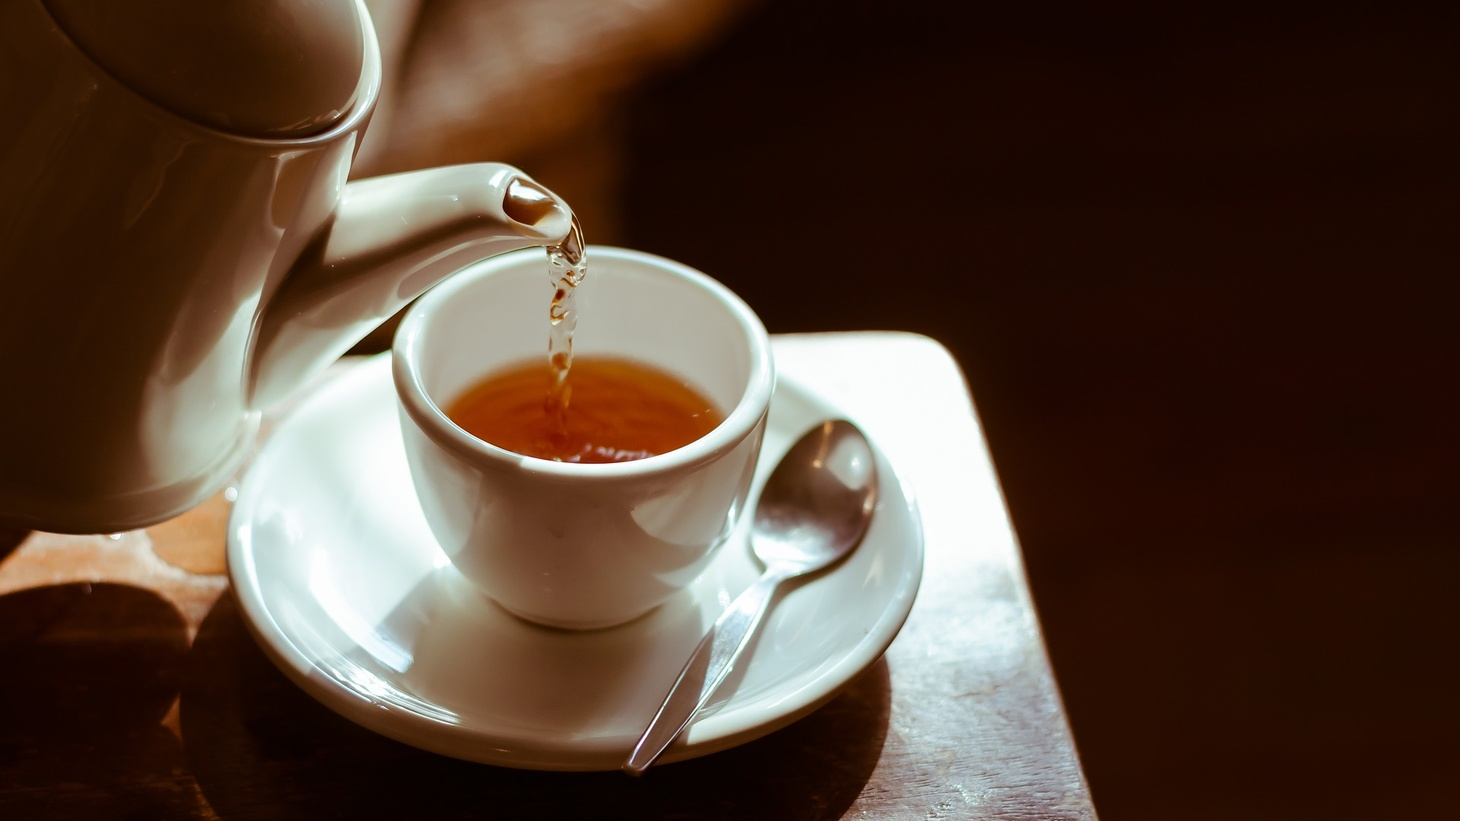 Get out of bed and drink tea if you feel sick in the morning, says Dr. Michael Wilkes.